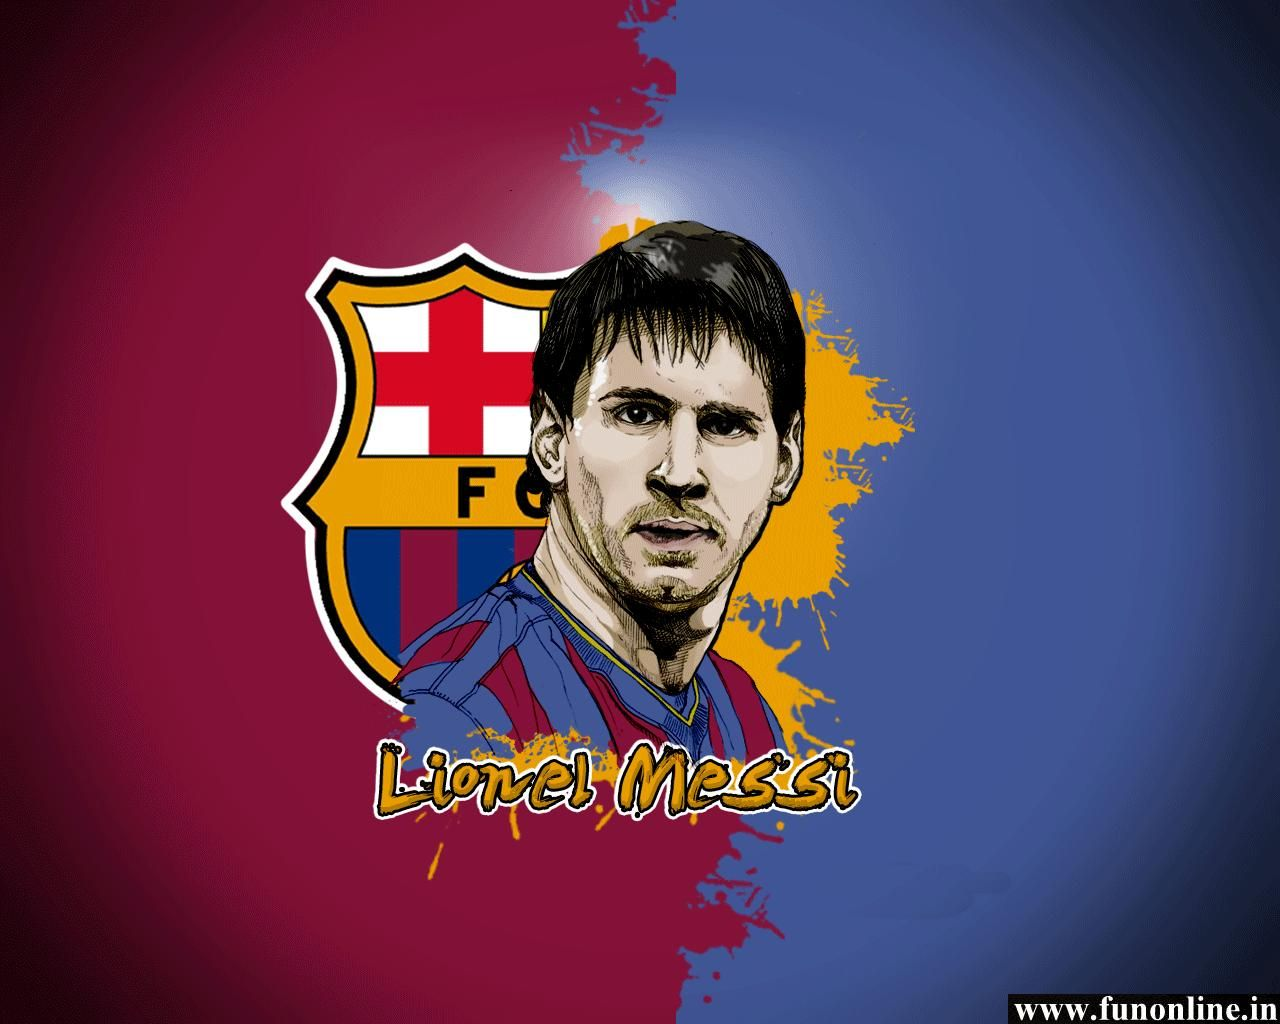 Hd wallpaper messi - Messi Hd Wallpapers P Wallpaper 2560 1440 Messi Hd Wallpaper 64 Wallpapers